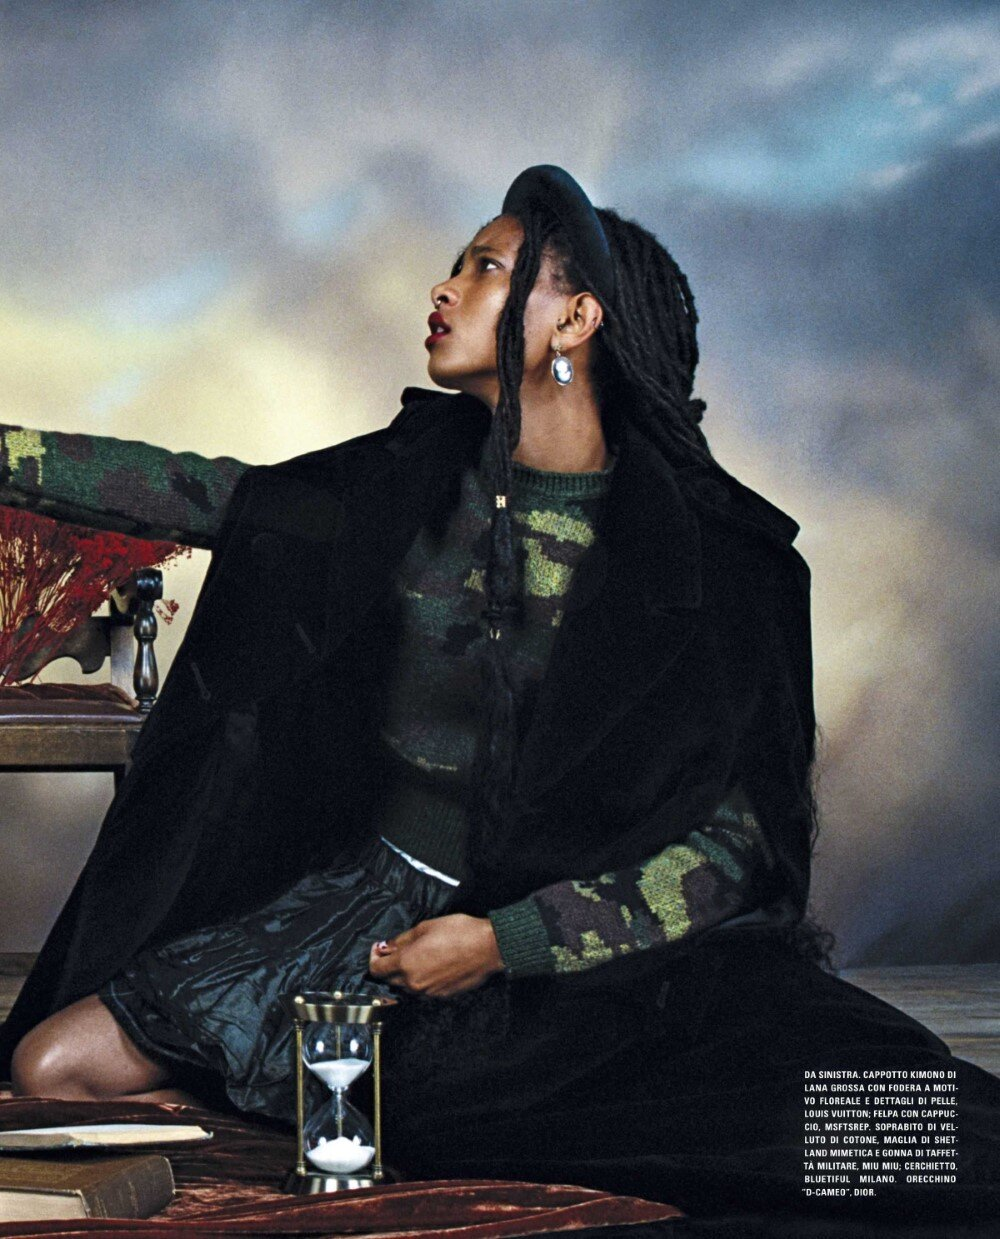 Jaden + Willow Smith Hugo Comte Vogue Italia Oct 2019 (11).jpg